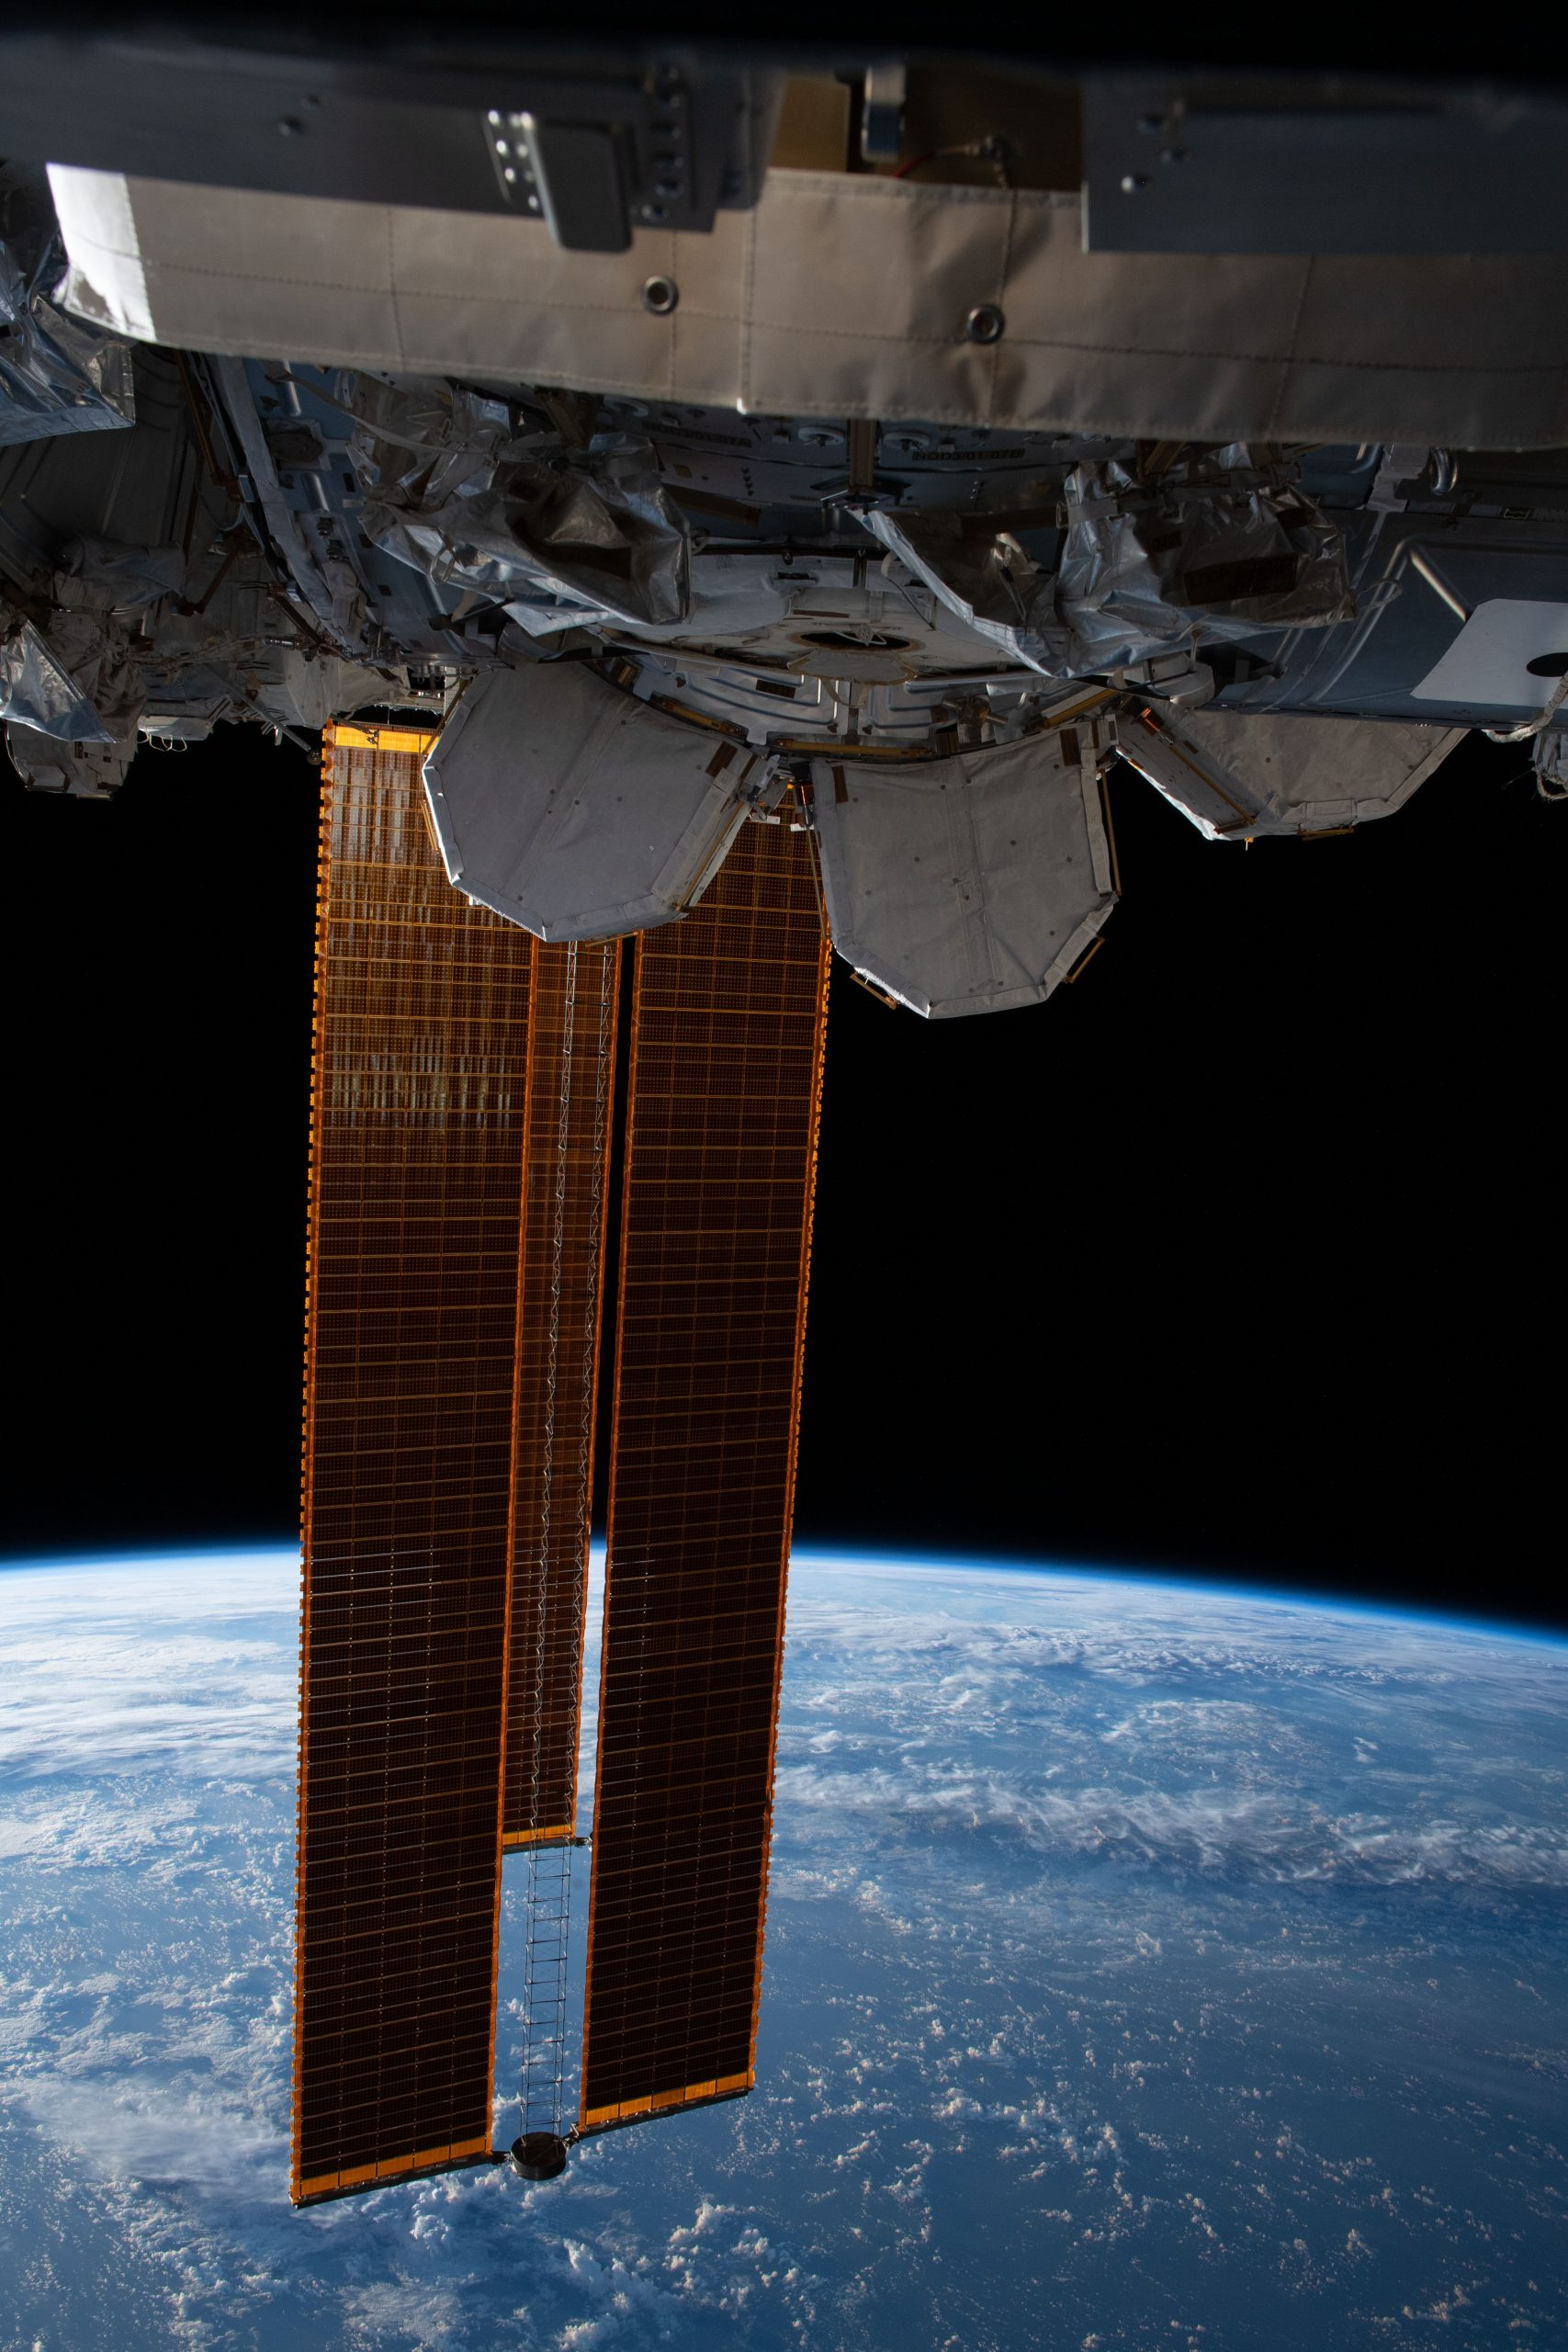 International Space Station with solar arrays